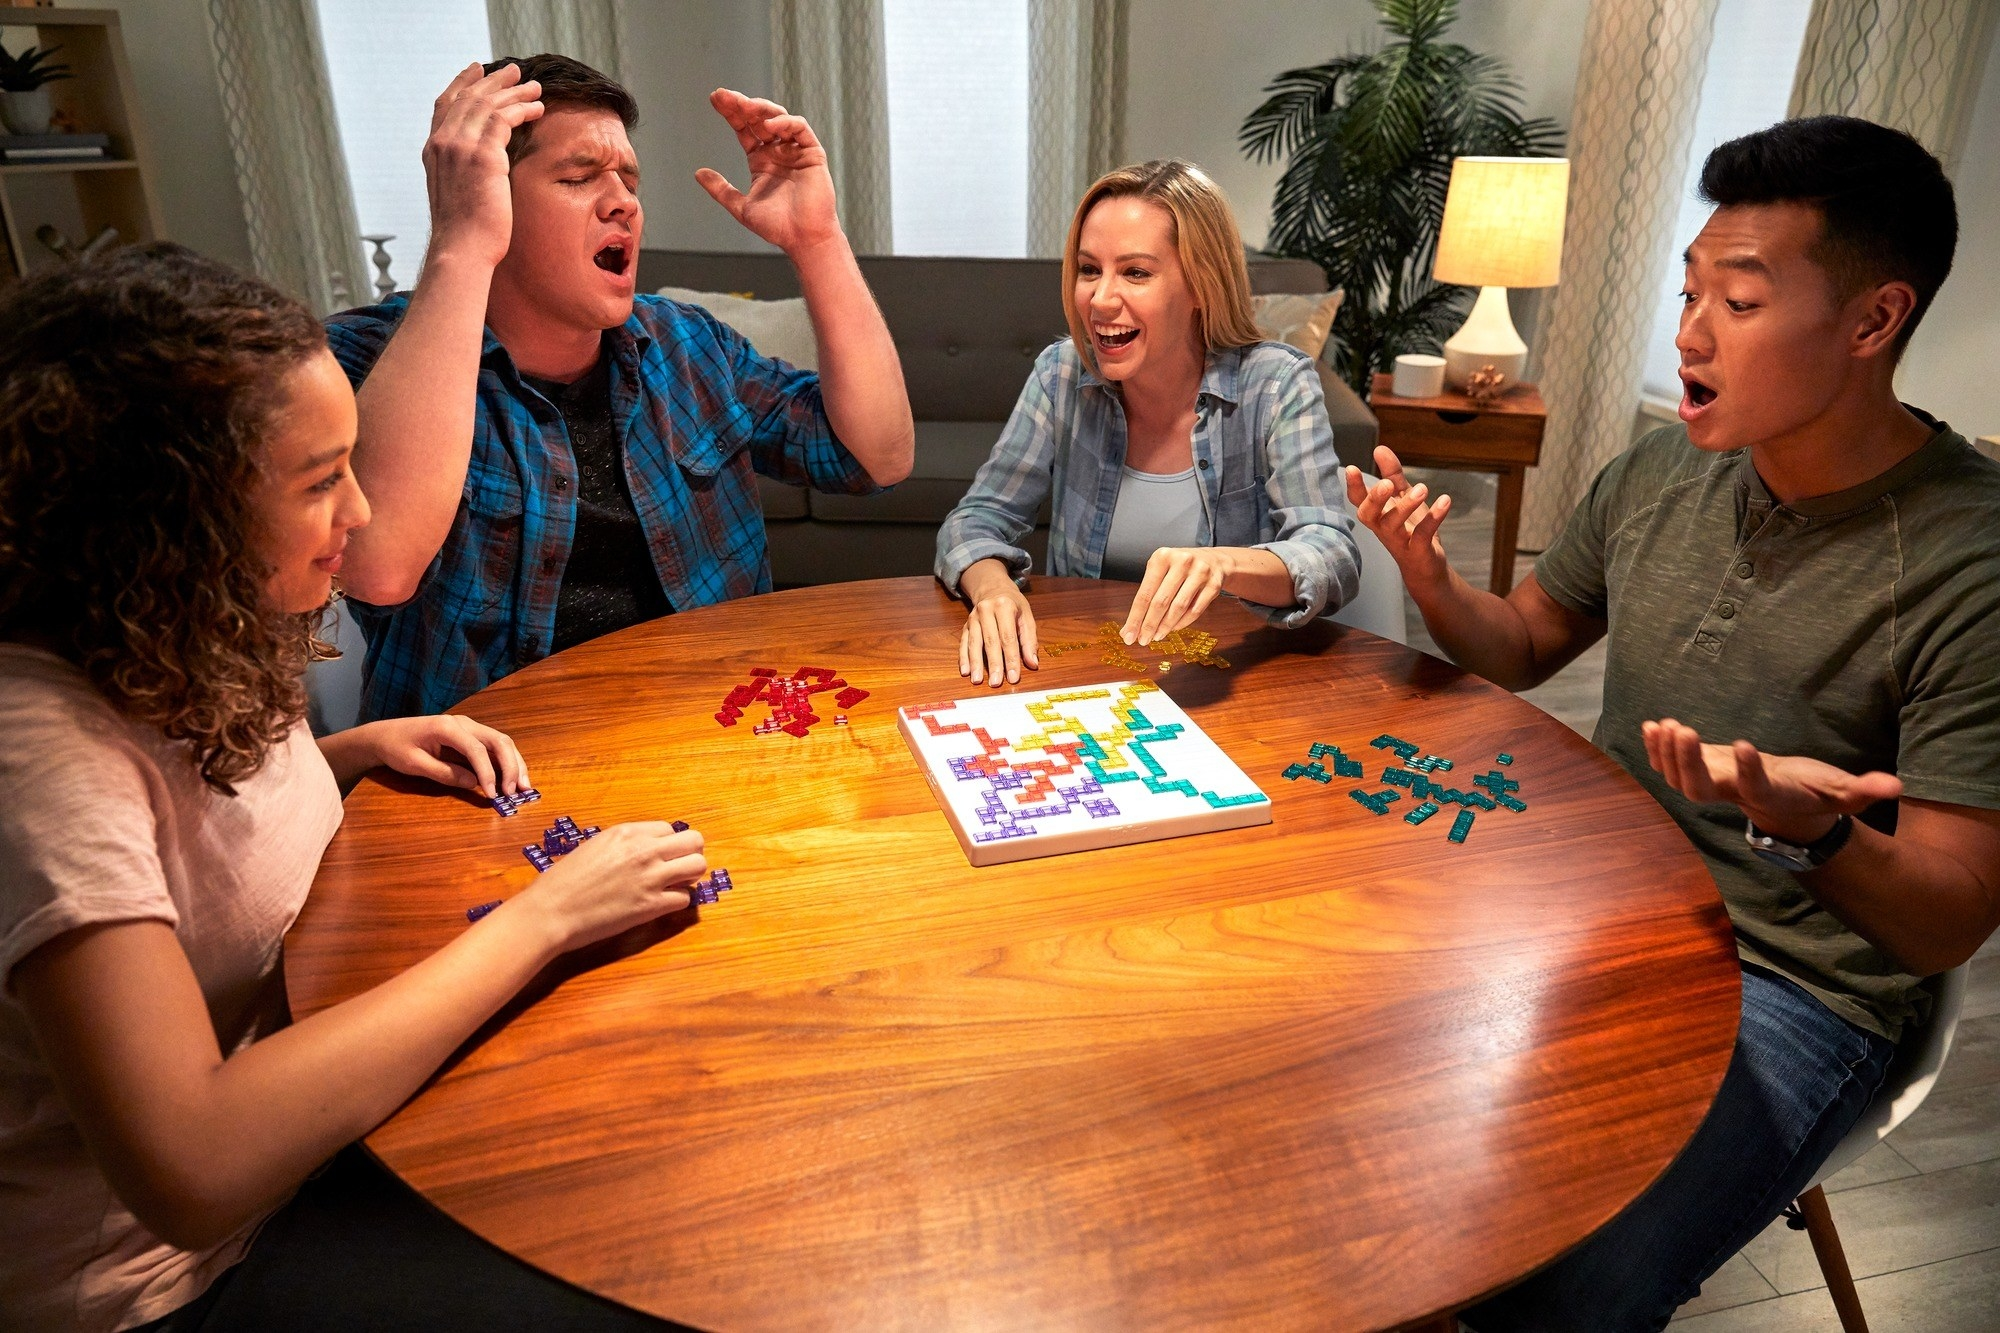 A group playing the game